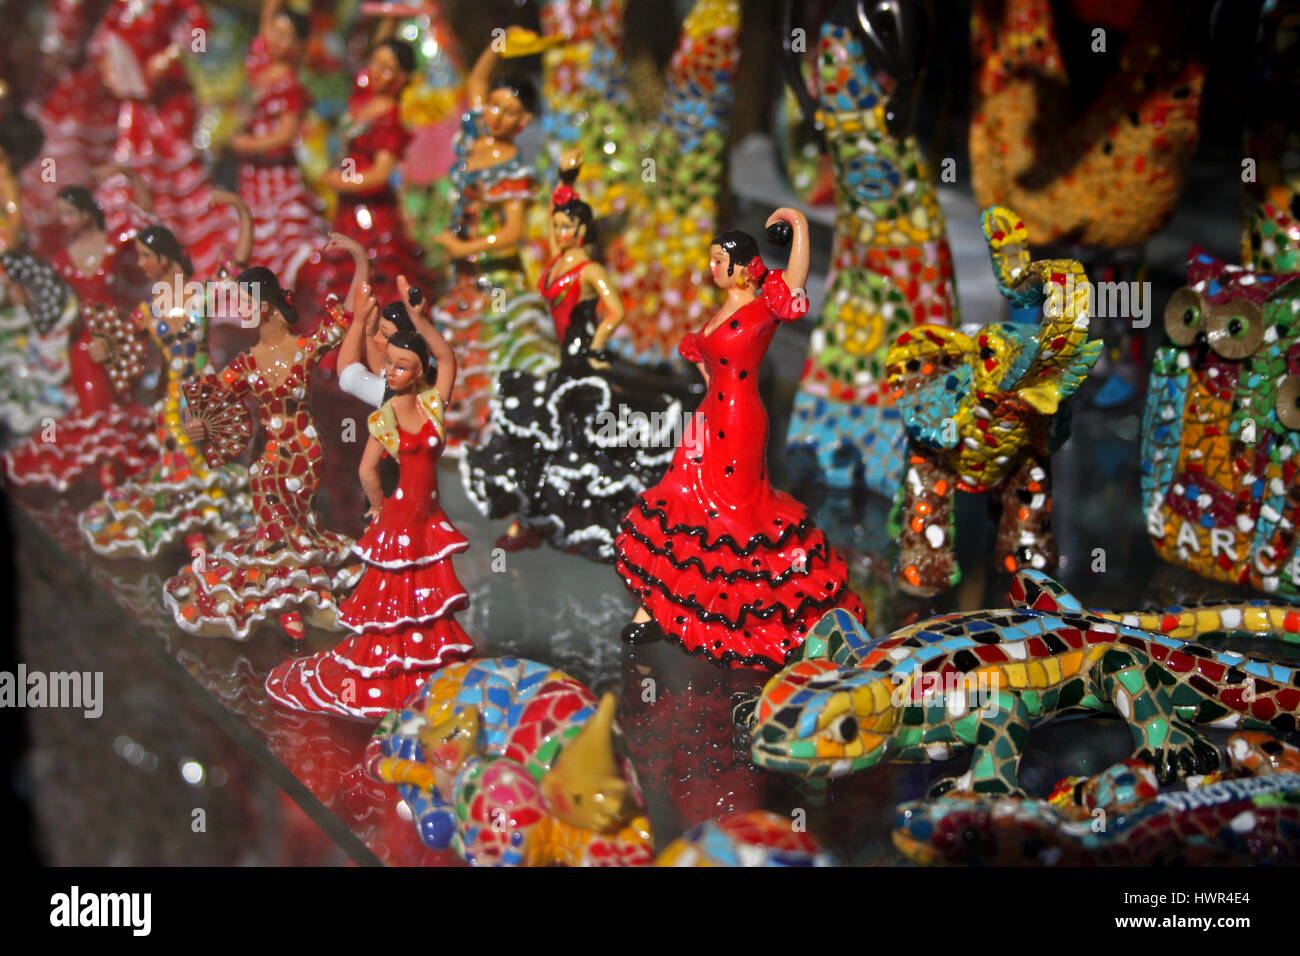 Kitsch tourist souvenirs on La Rambla - Stock Image